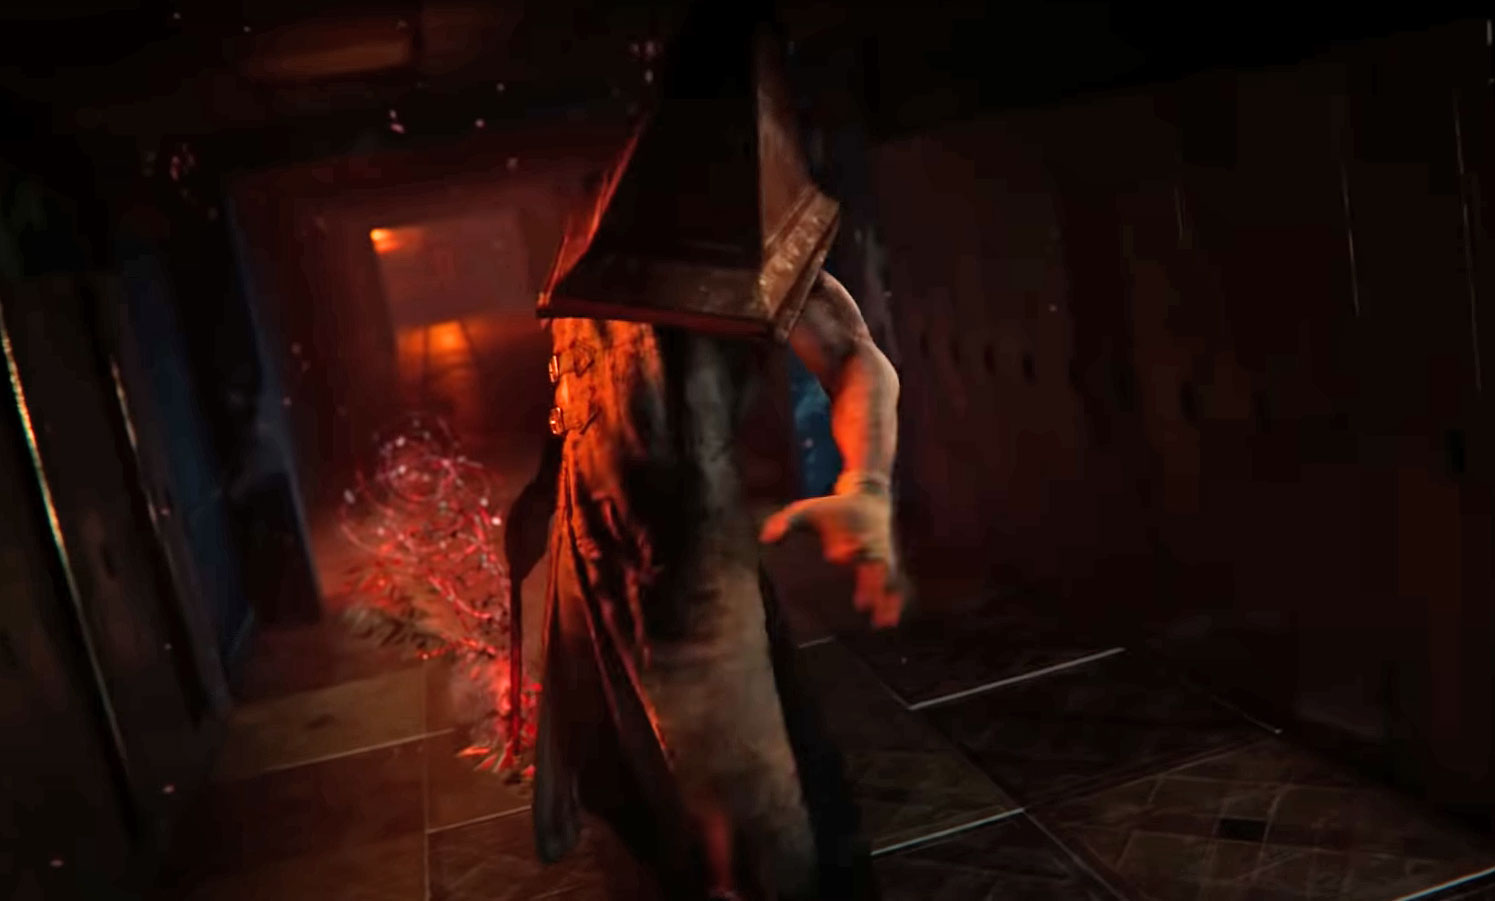 The Next Dead By Daylight Killer Is Pyramid Head From Silent